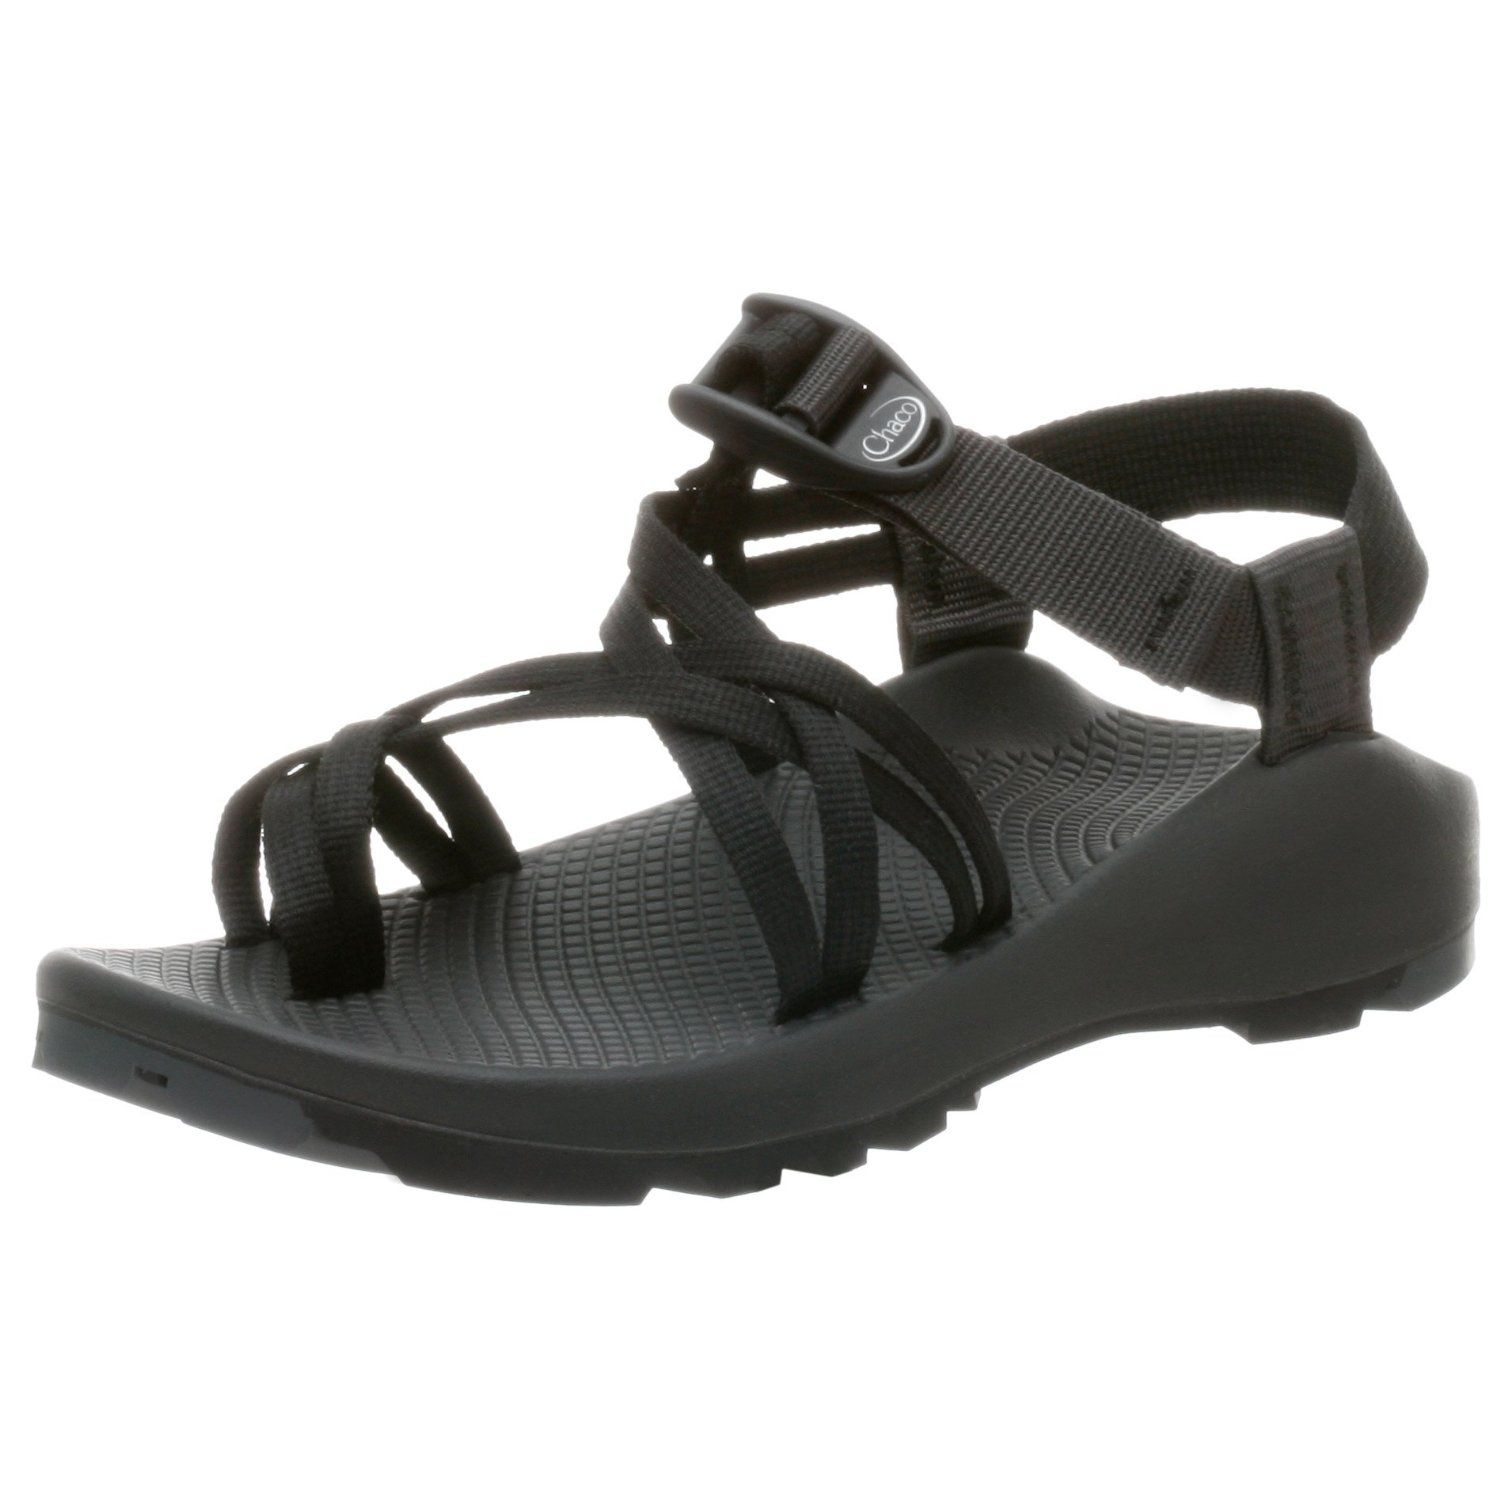 1b9d72d55c66  87 Black Chaco Yampa ZX 2 Sandals. Bought and don t like. Takes five  minutes to cram my feet into the straps every time. Can t remember which  straps pull ...